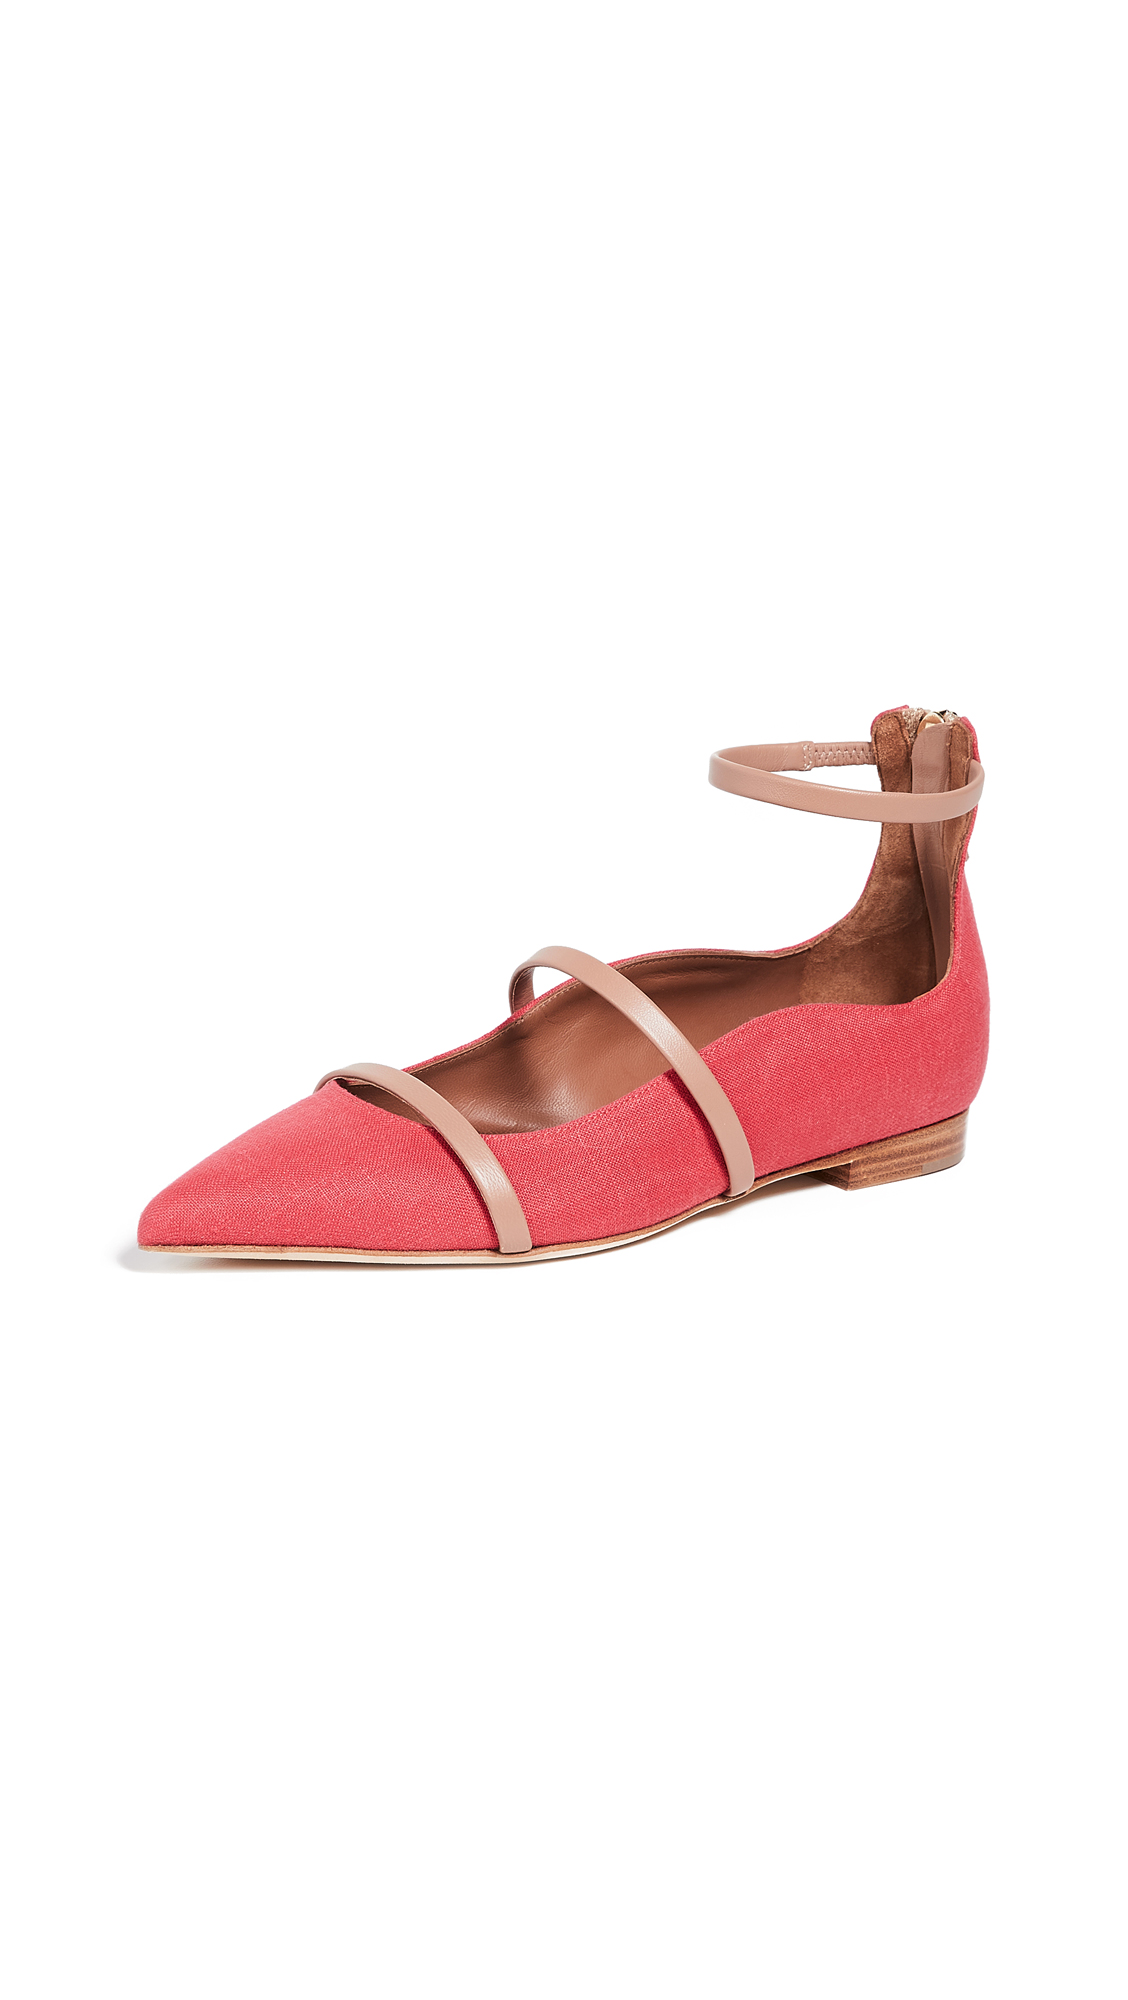 Malone Souliers Robyn Flats - Red/Nude